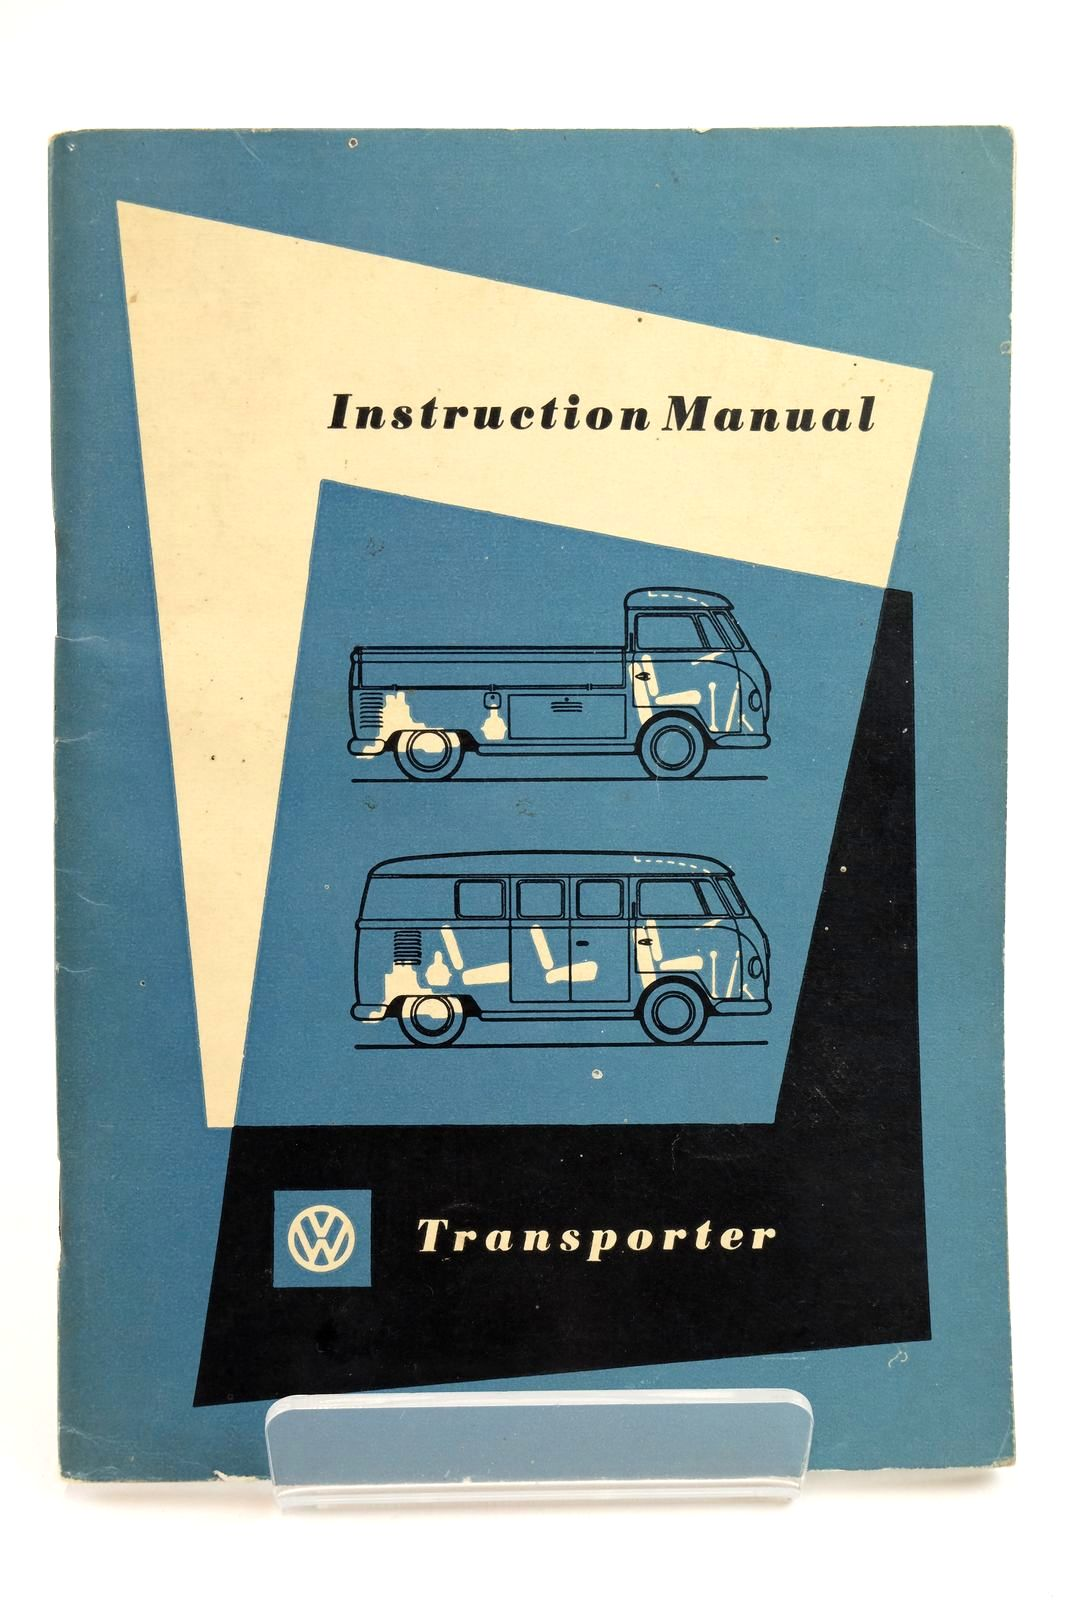 Photo of INSTRUCTION MANUAL VW TRANSPORTER published by Volkswagenwerk Ag Wolfsburg (STOCK CODE: 2132249)  for sale by Stella & Rose's Books